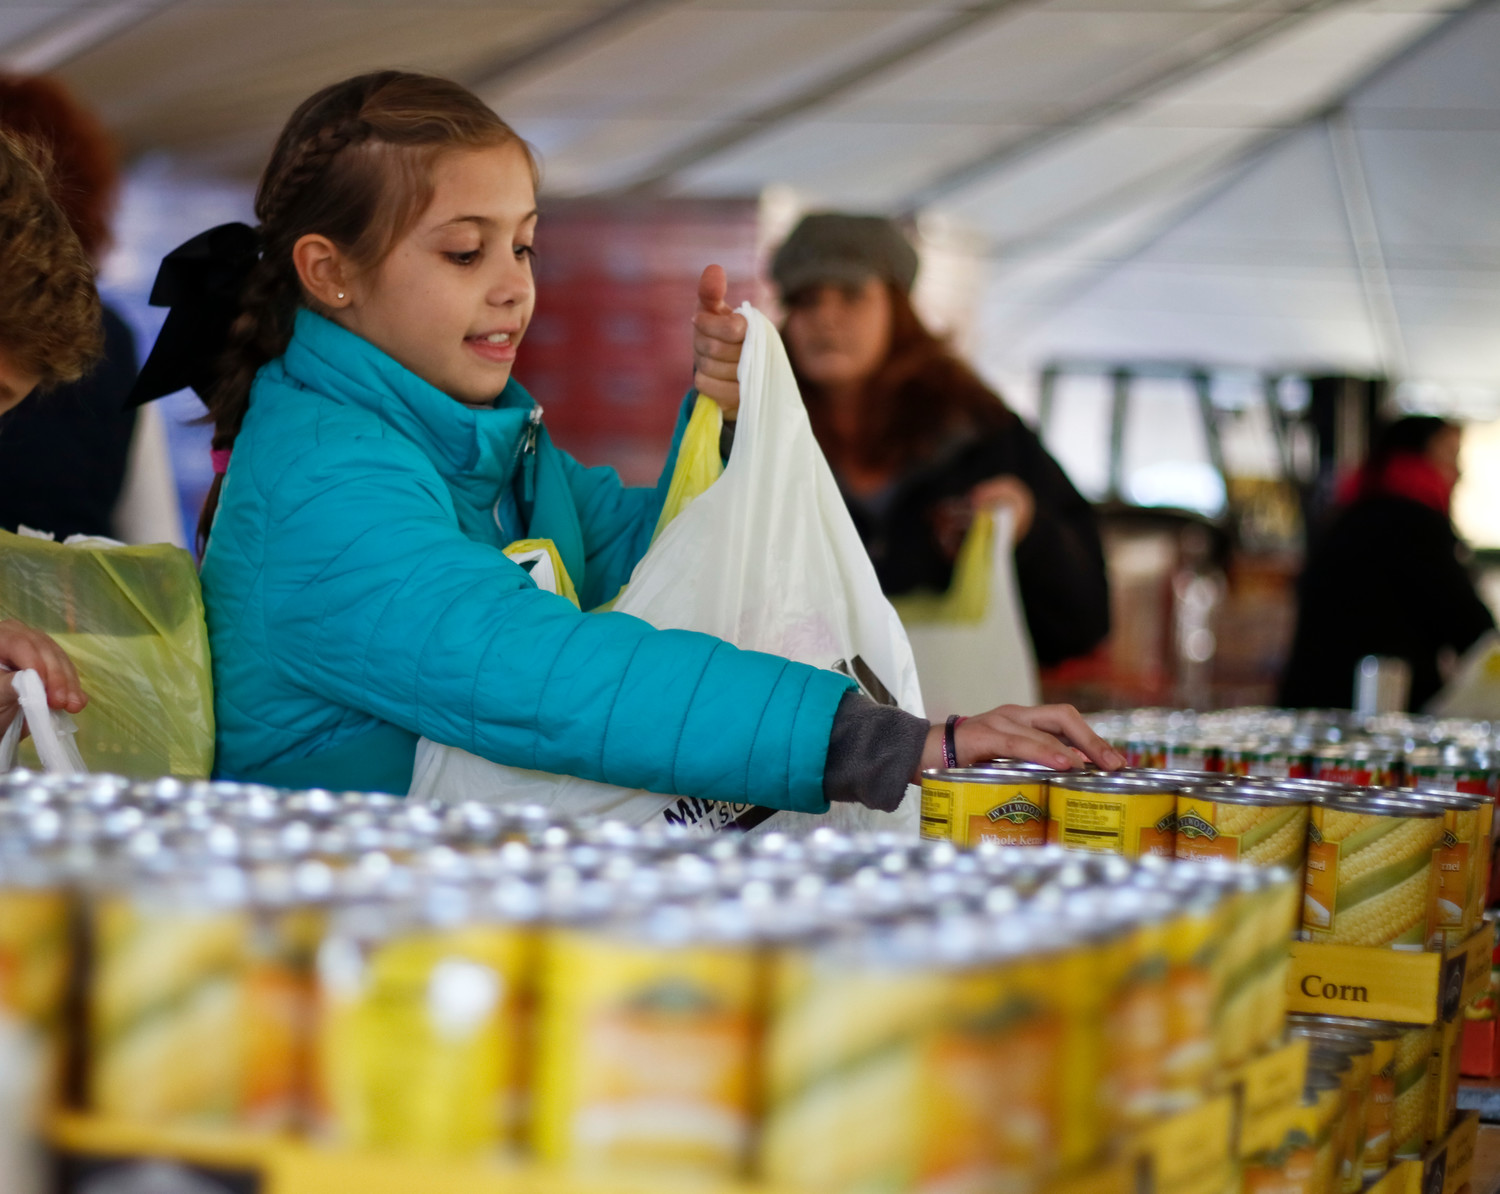 Ashley Favata, 9, from Rockville Centre Troop 828, added canned corn to one of the many bags that she and her fellow Girl Scouts packed while they volunteered at Mid Island Collision's Fill-the-Bag event on Monday, which collected Thanksgiving meals for those in need.